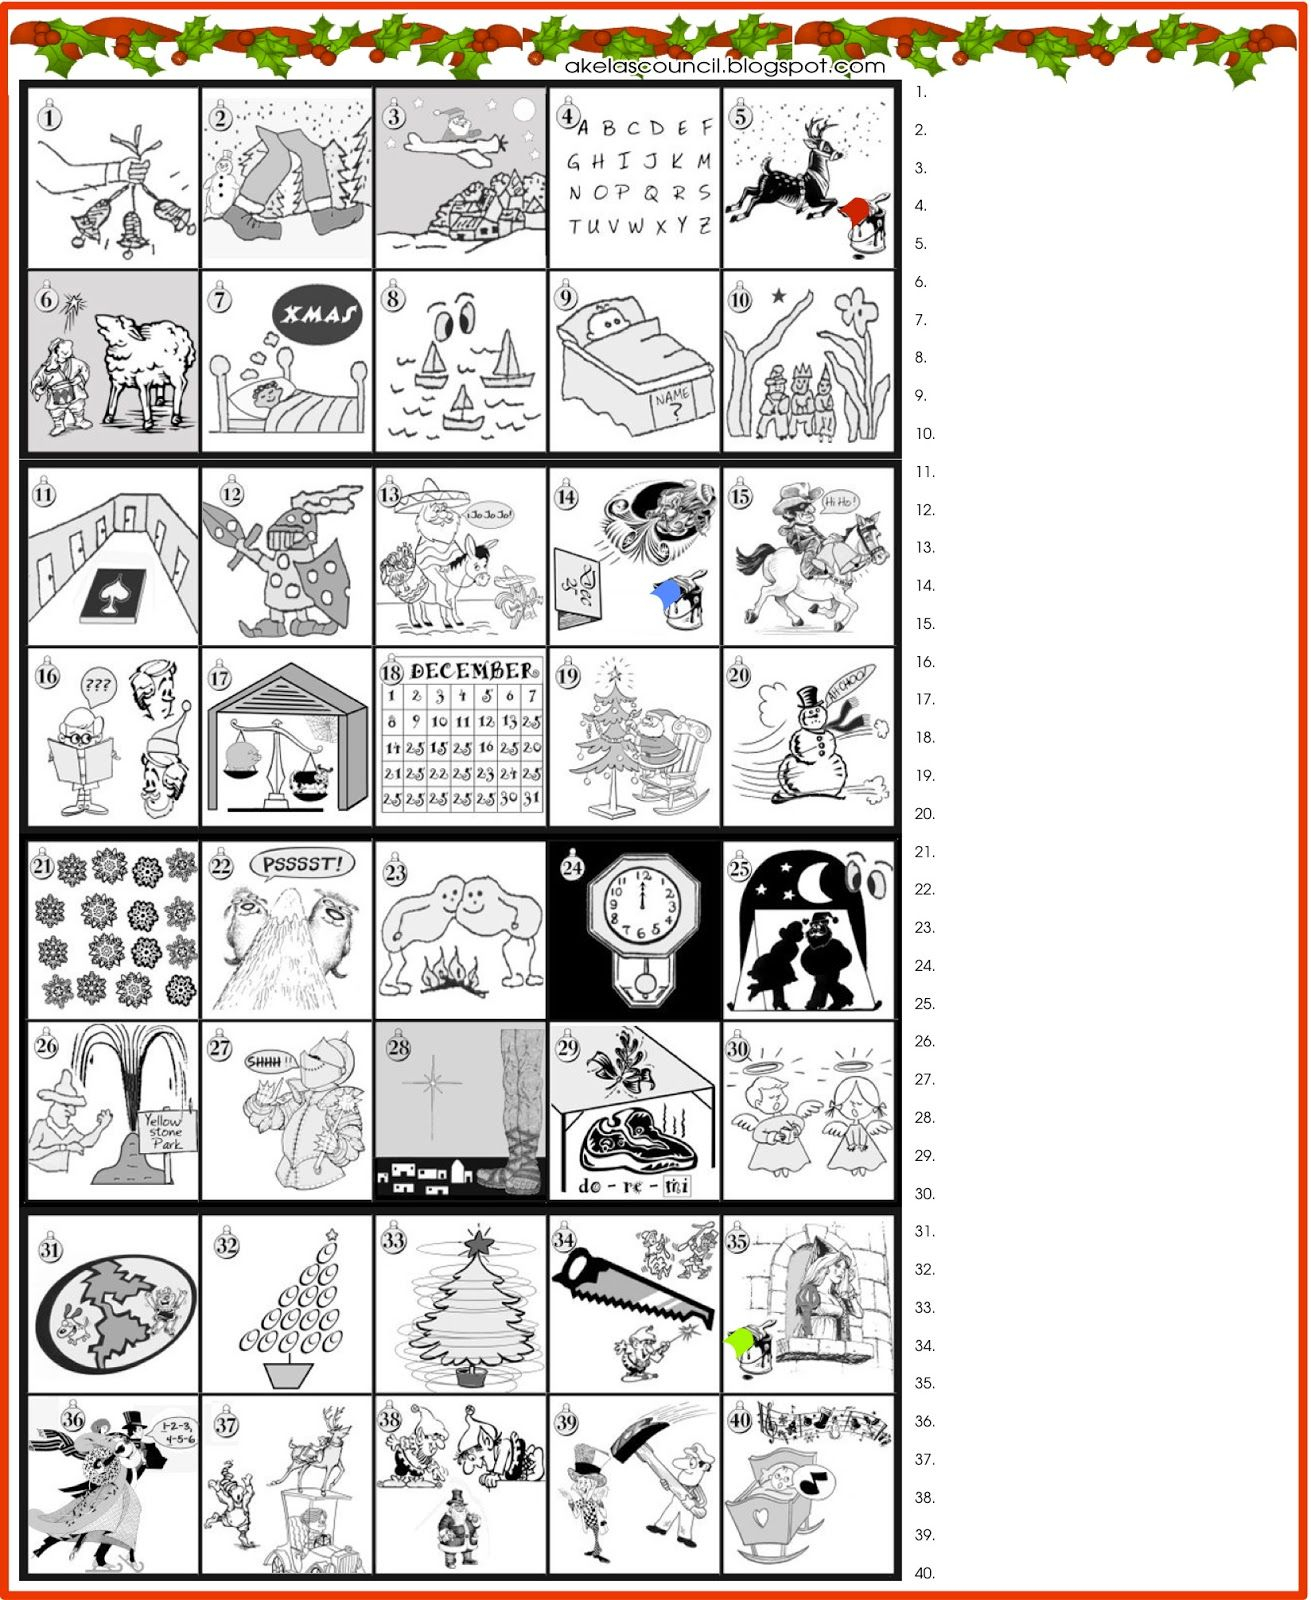 Printable * Guess The Christmas Songs Or Carols Word Puzzle - Free Printable Christmas Games And Puzzles